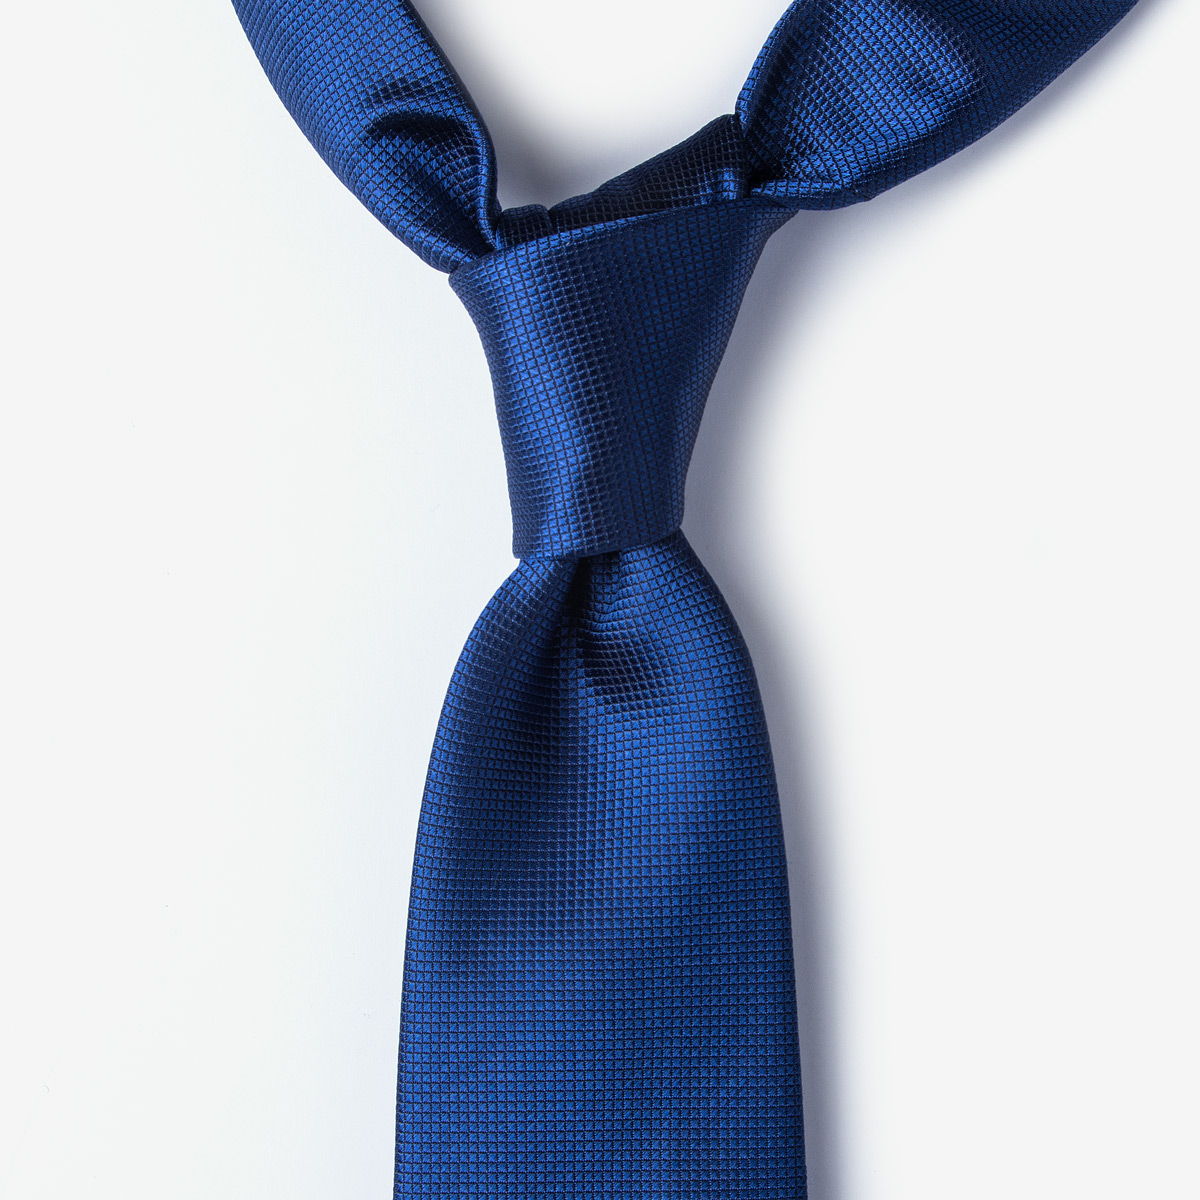 How to Tie a Necktie - A Comprehensive Knotting Guide